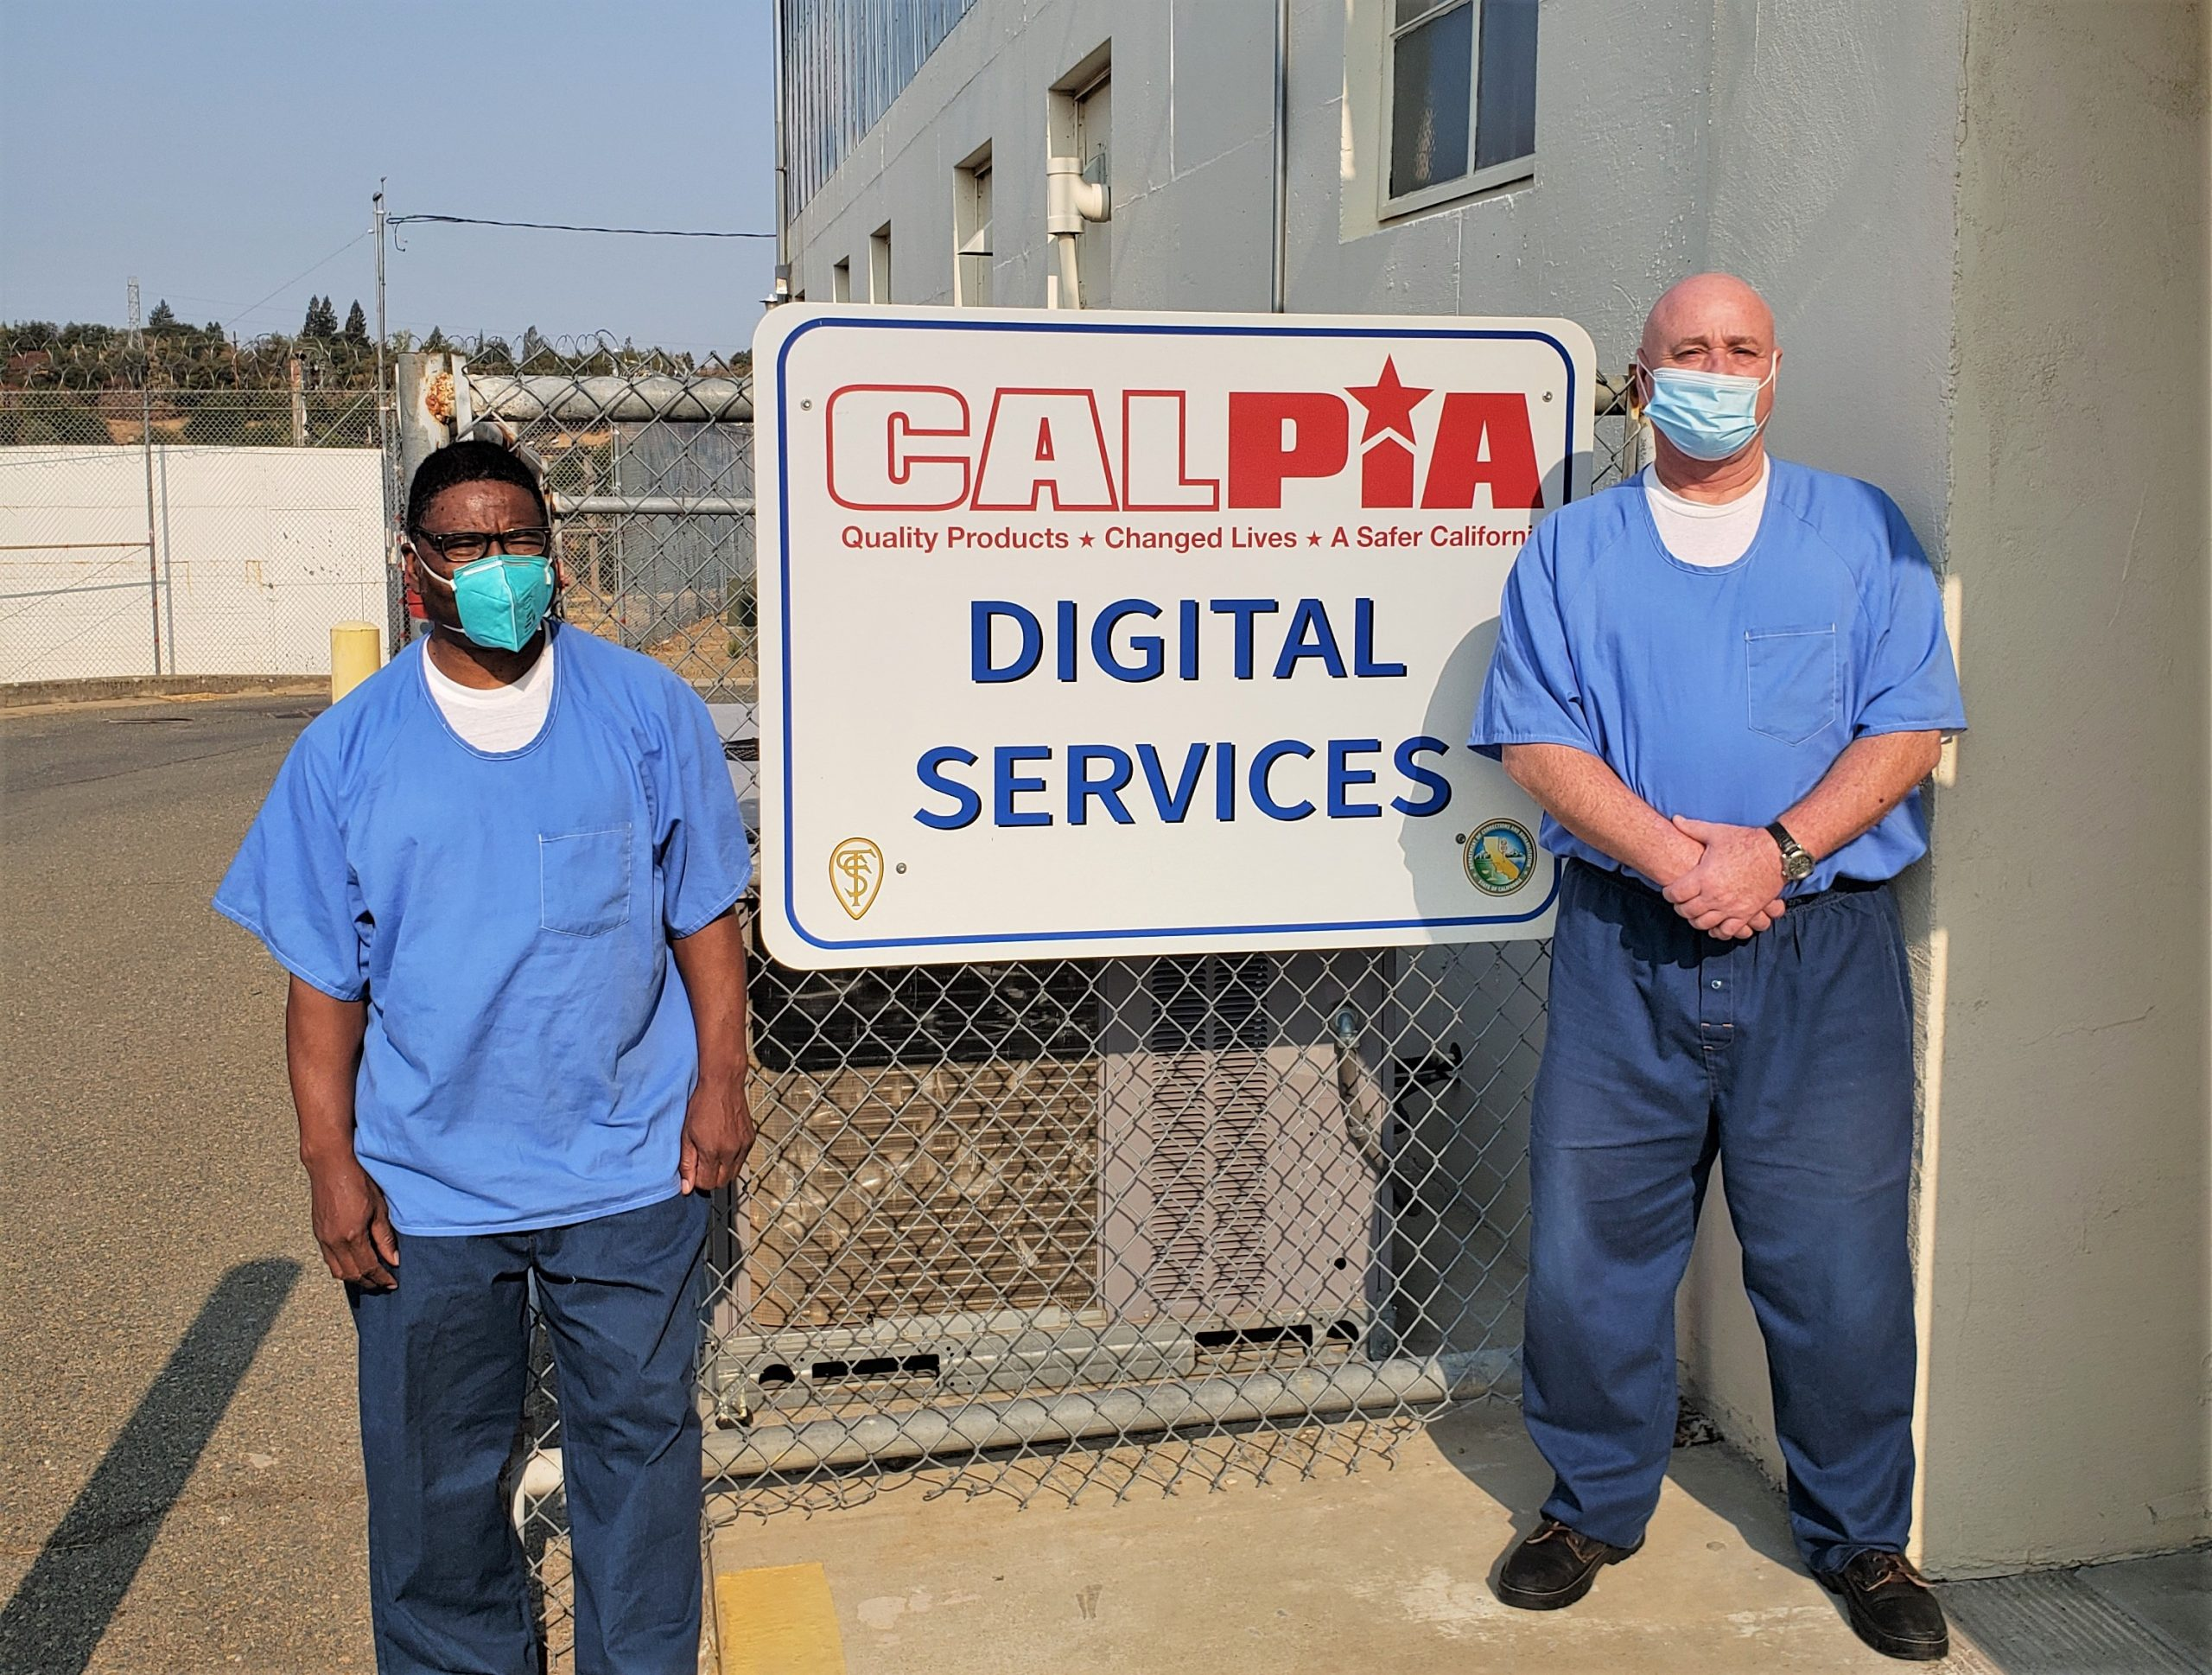 Two incarcerated men stand beside a CALPIA digital services sign.